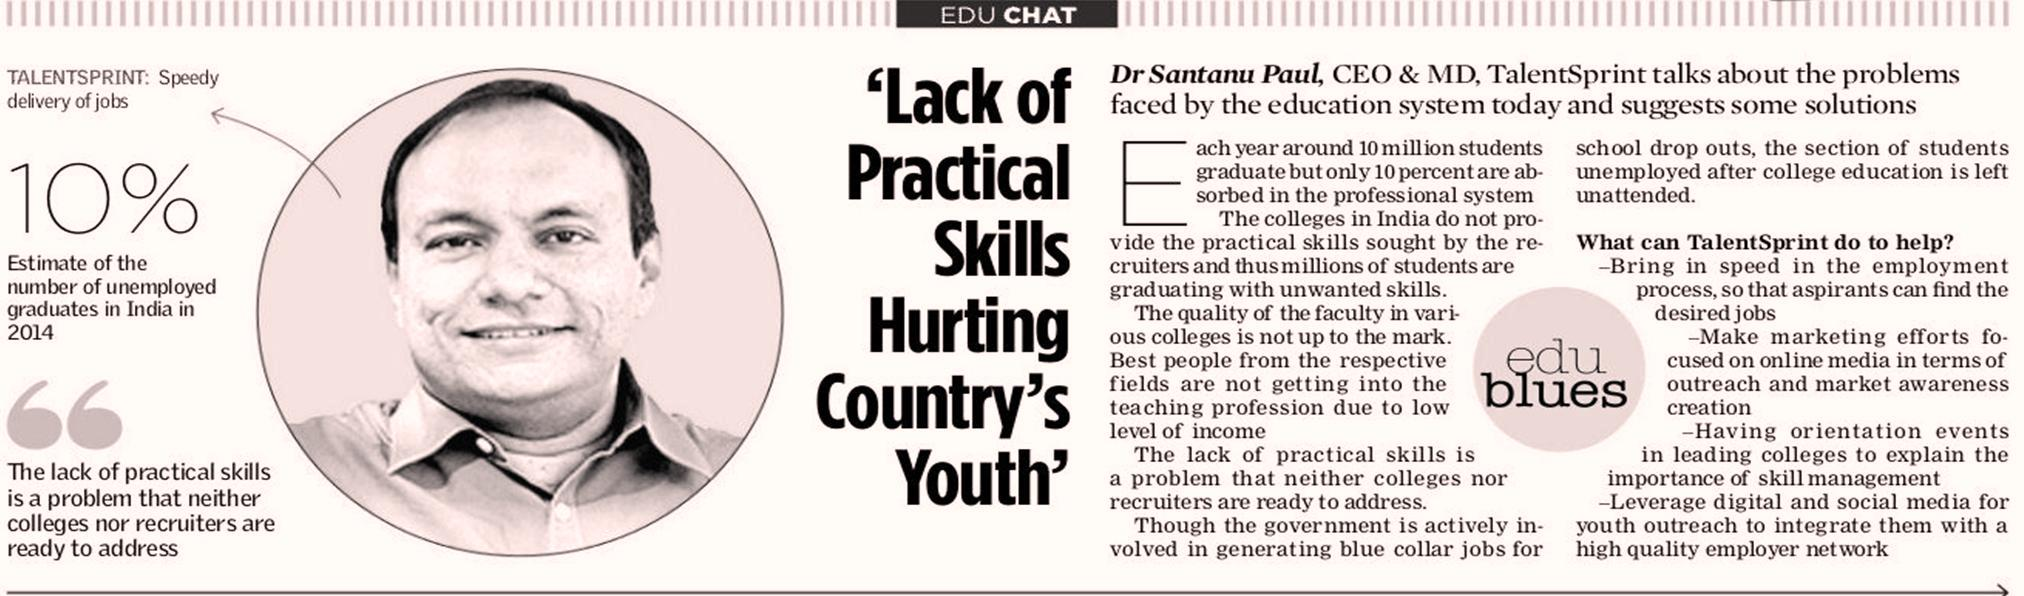 Lack of Practiacl Skills Hurting Country's Youth